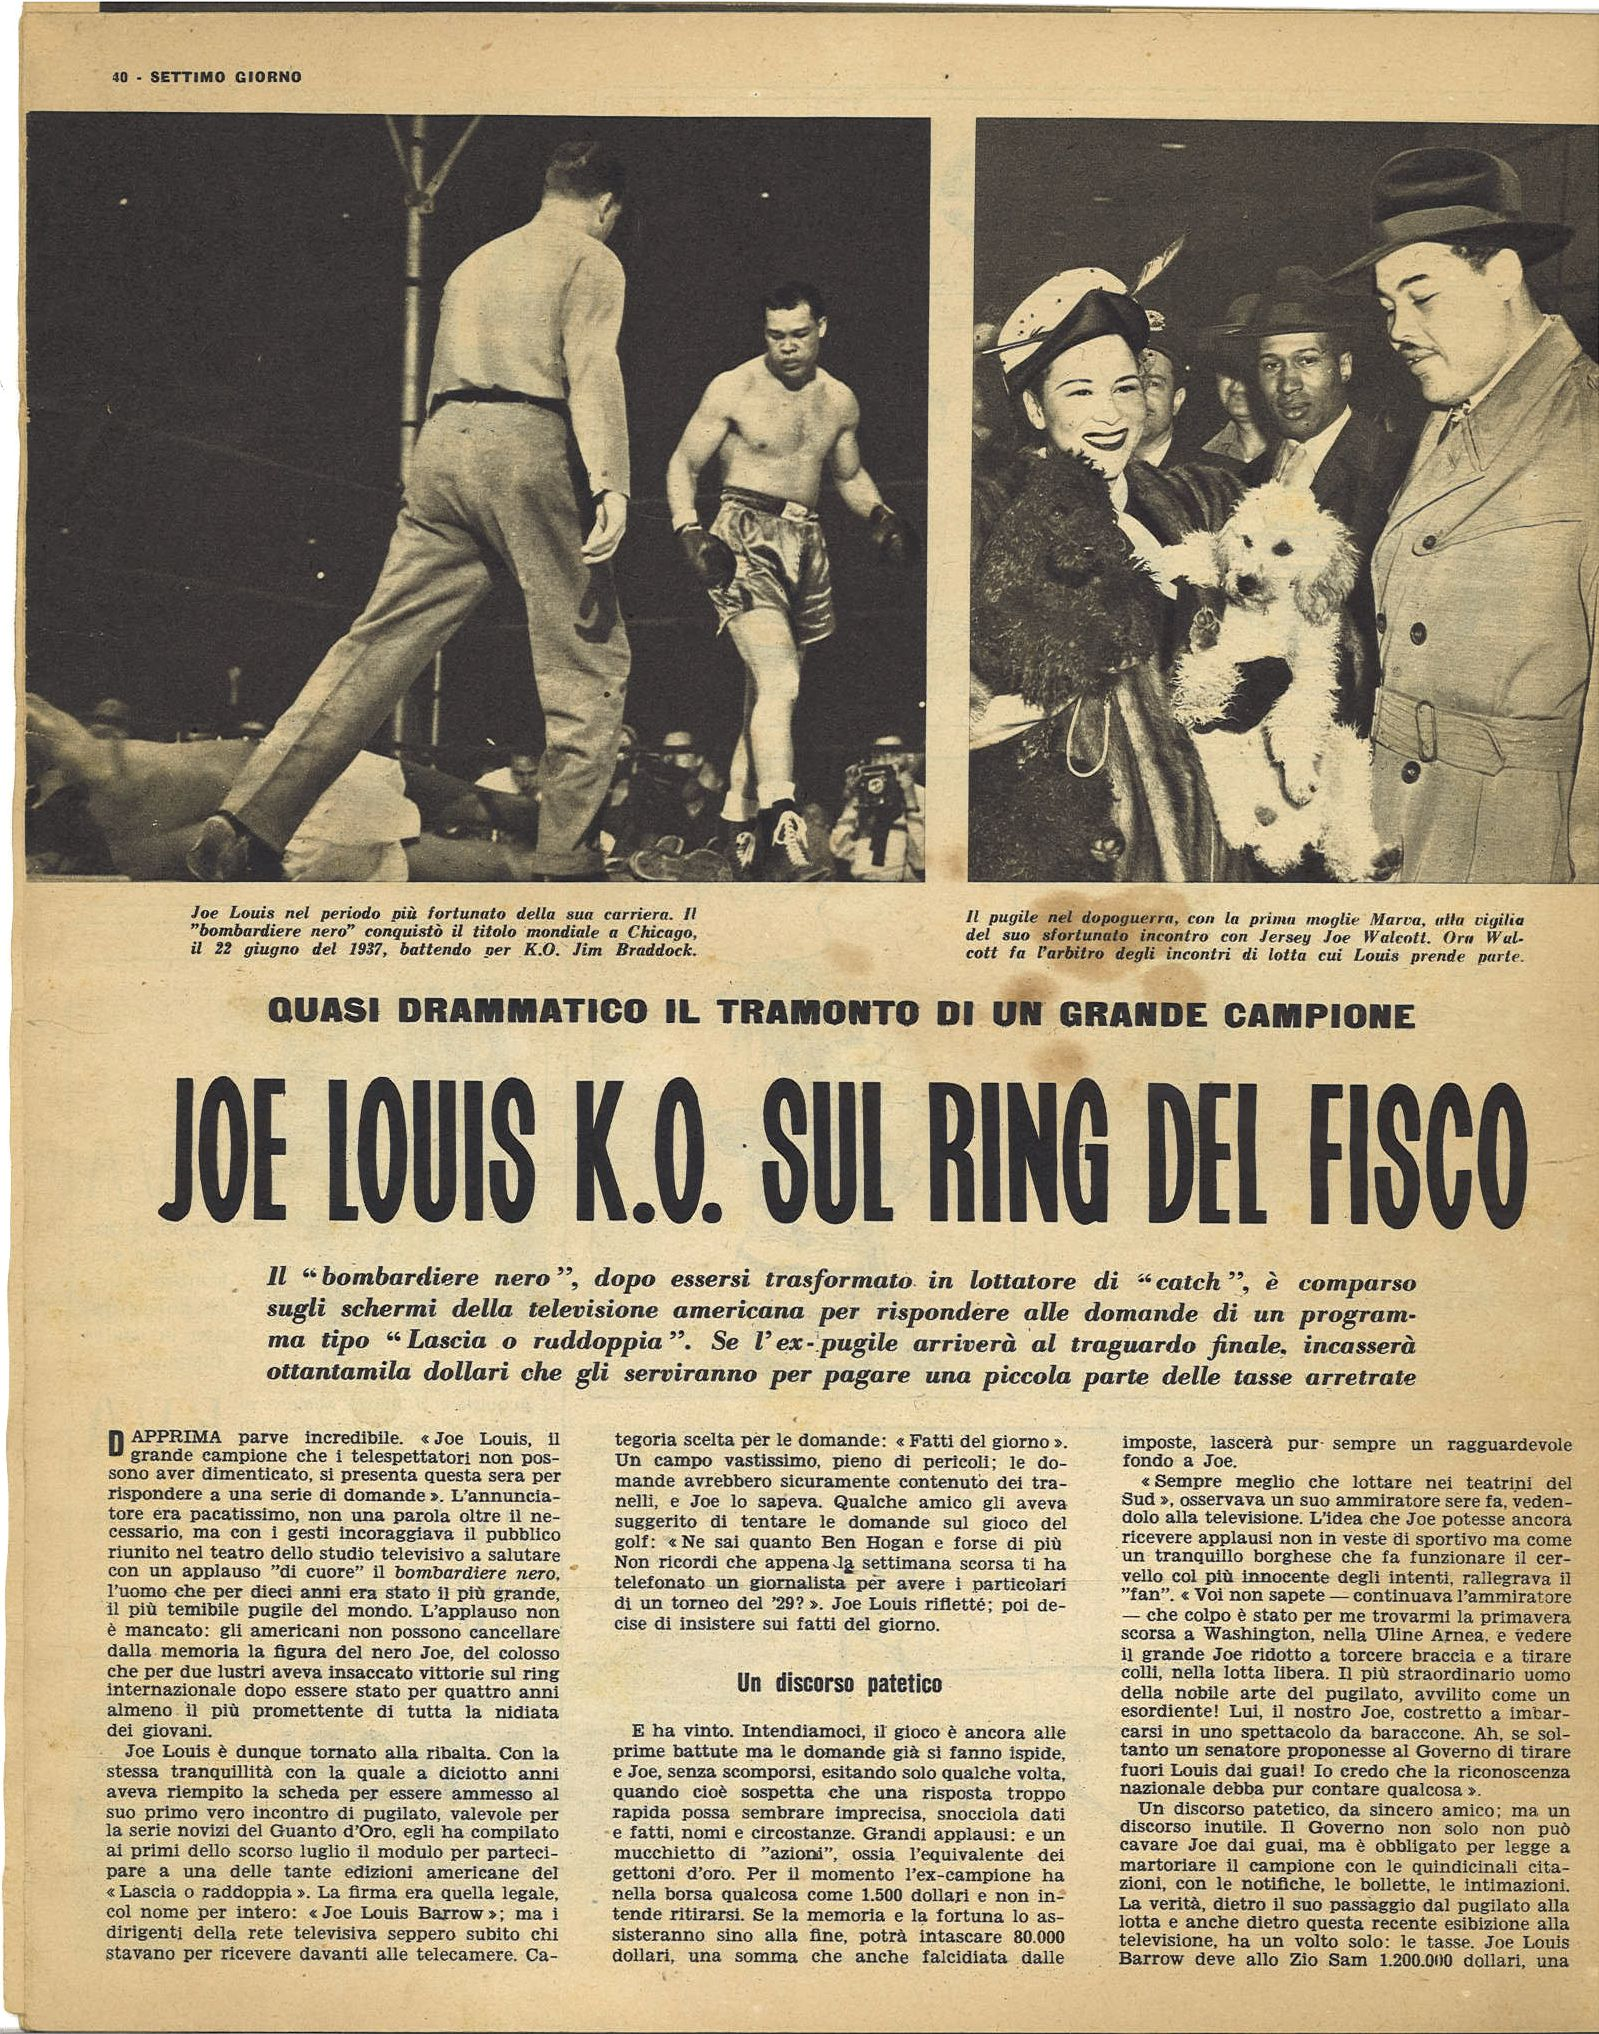 JOE LOUIS K.O. SUL RING DEL FISCO - CLIPPING-RITAGLIO DI GIORNALE